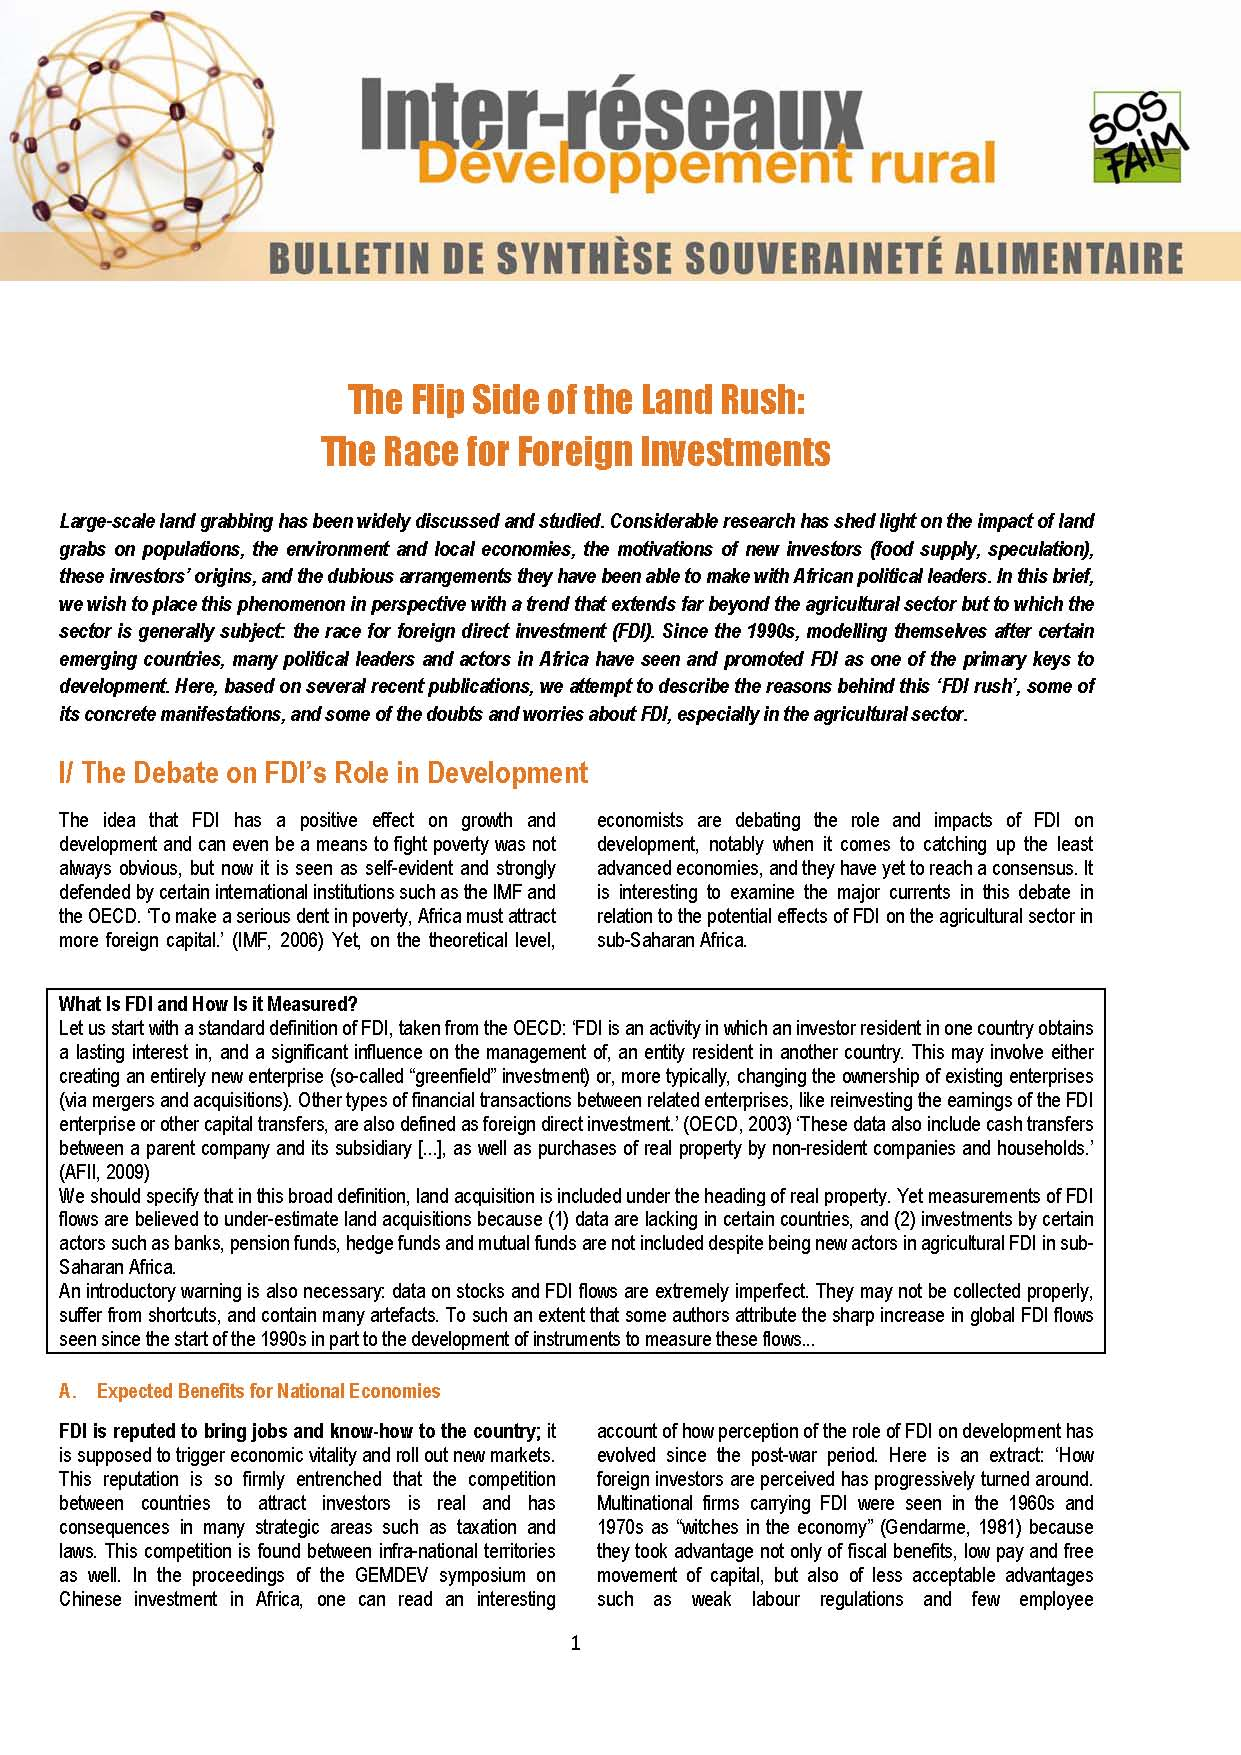 Food Sovereignty Brief n°7 - The Flip Side of the Land Rush: The Race for Foreign Investments